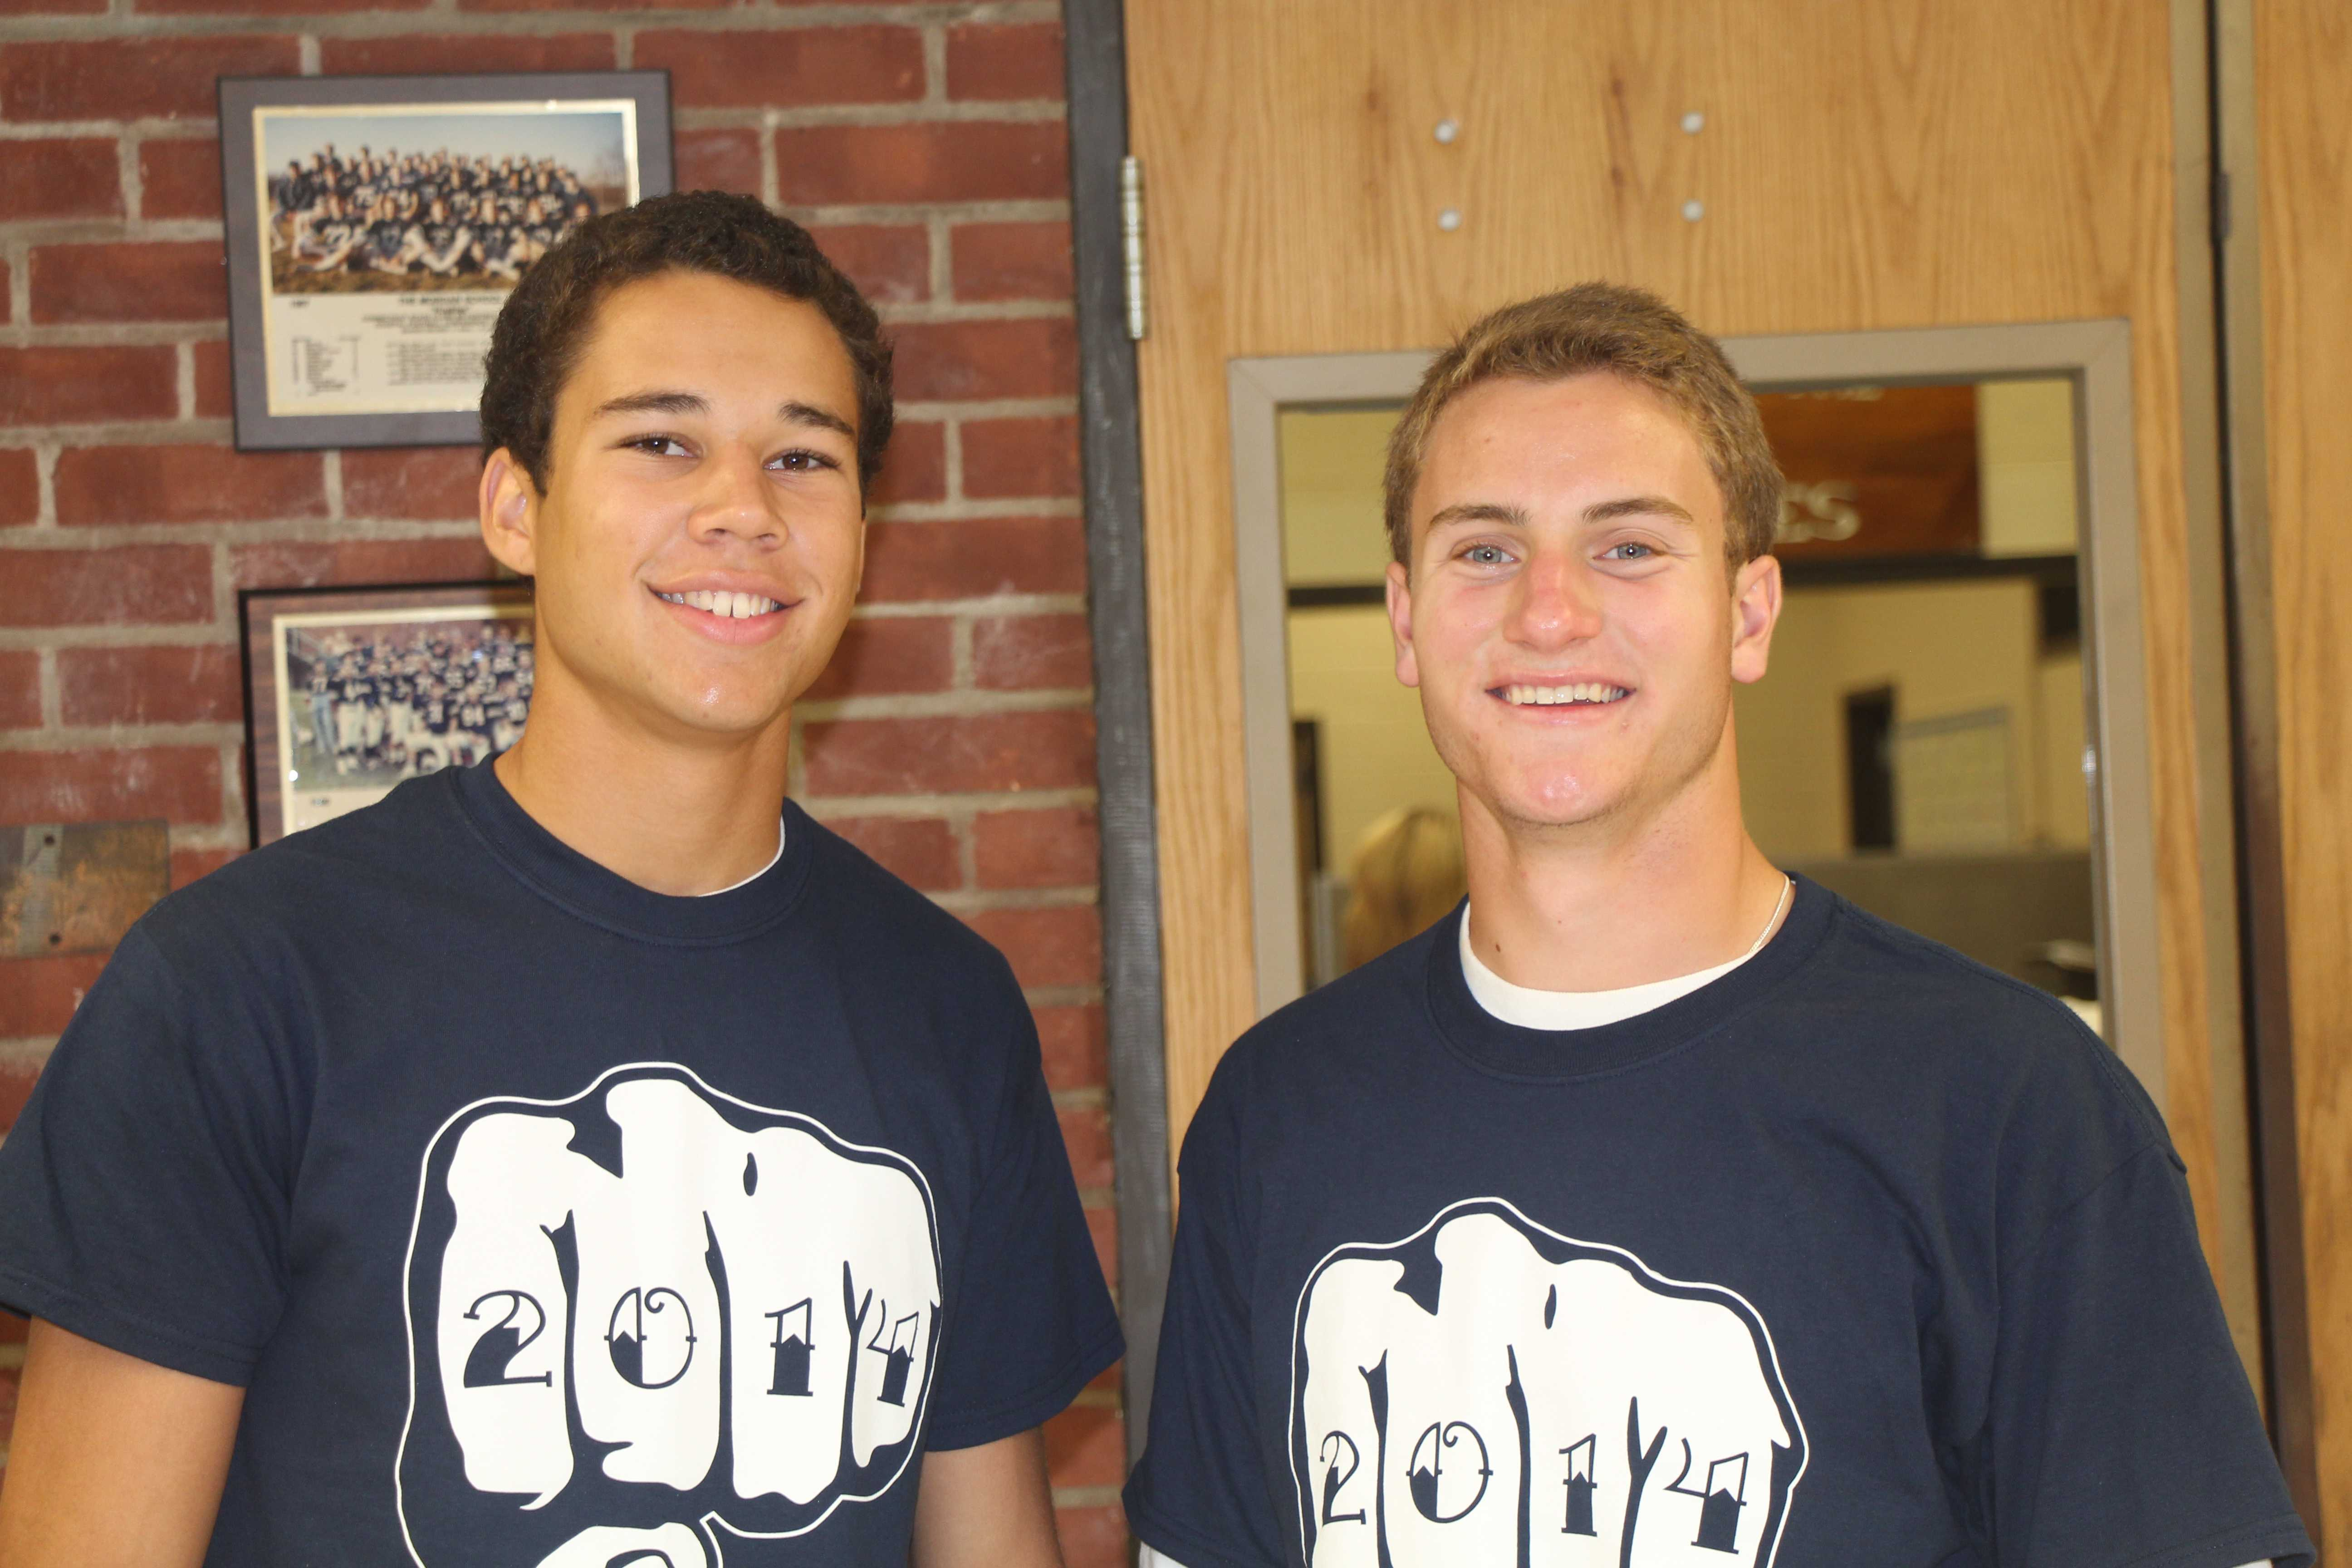 Boys Soccer captians Alex best and Patrick McAllister